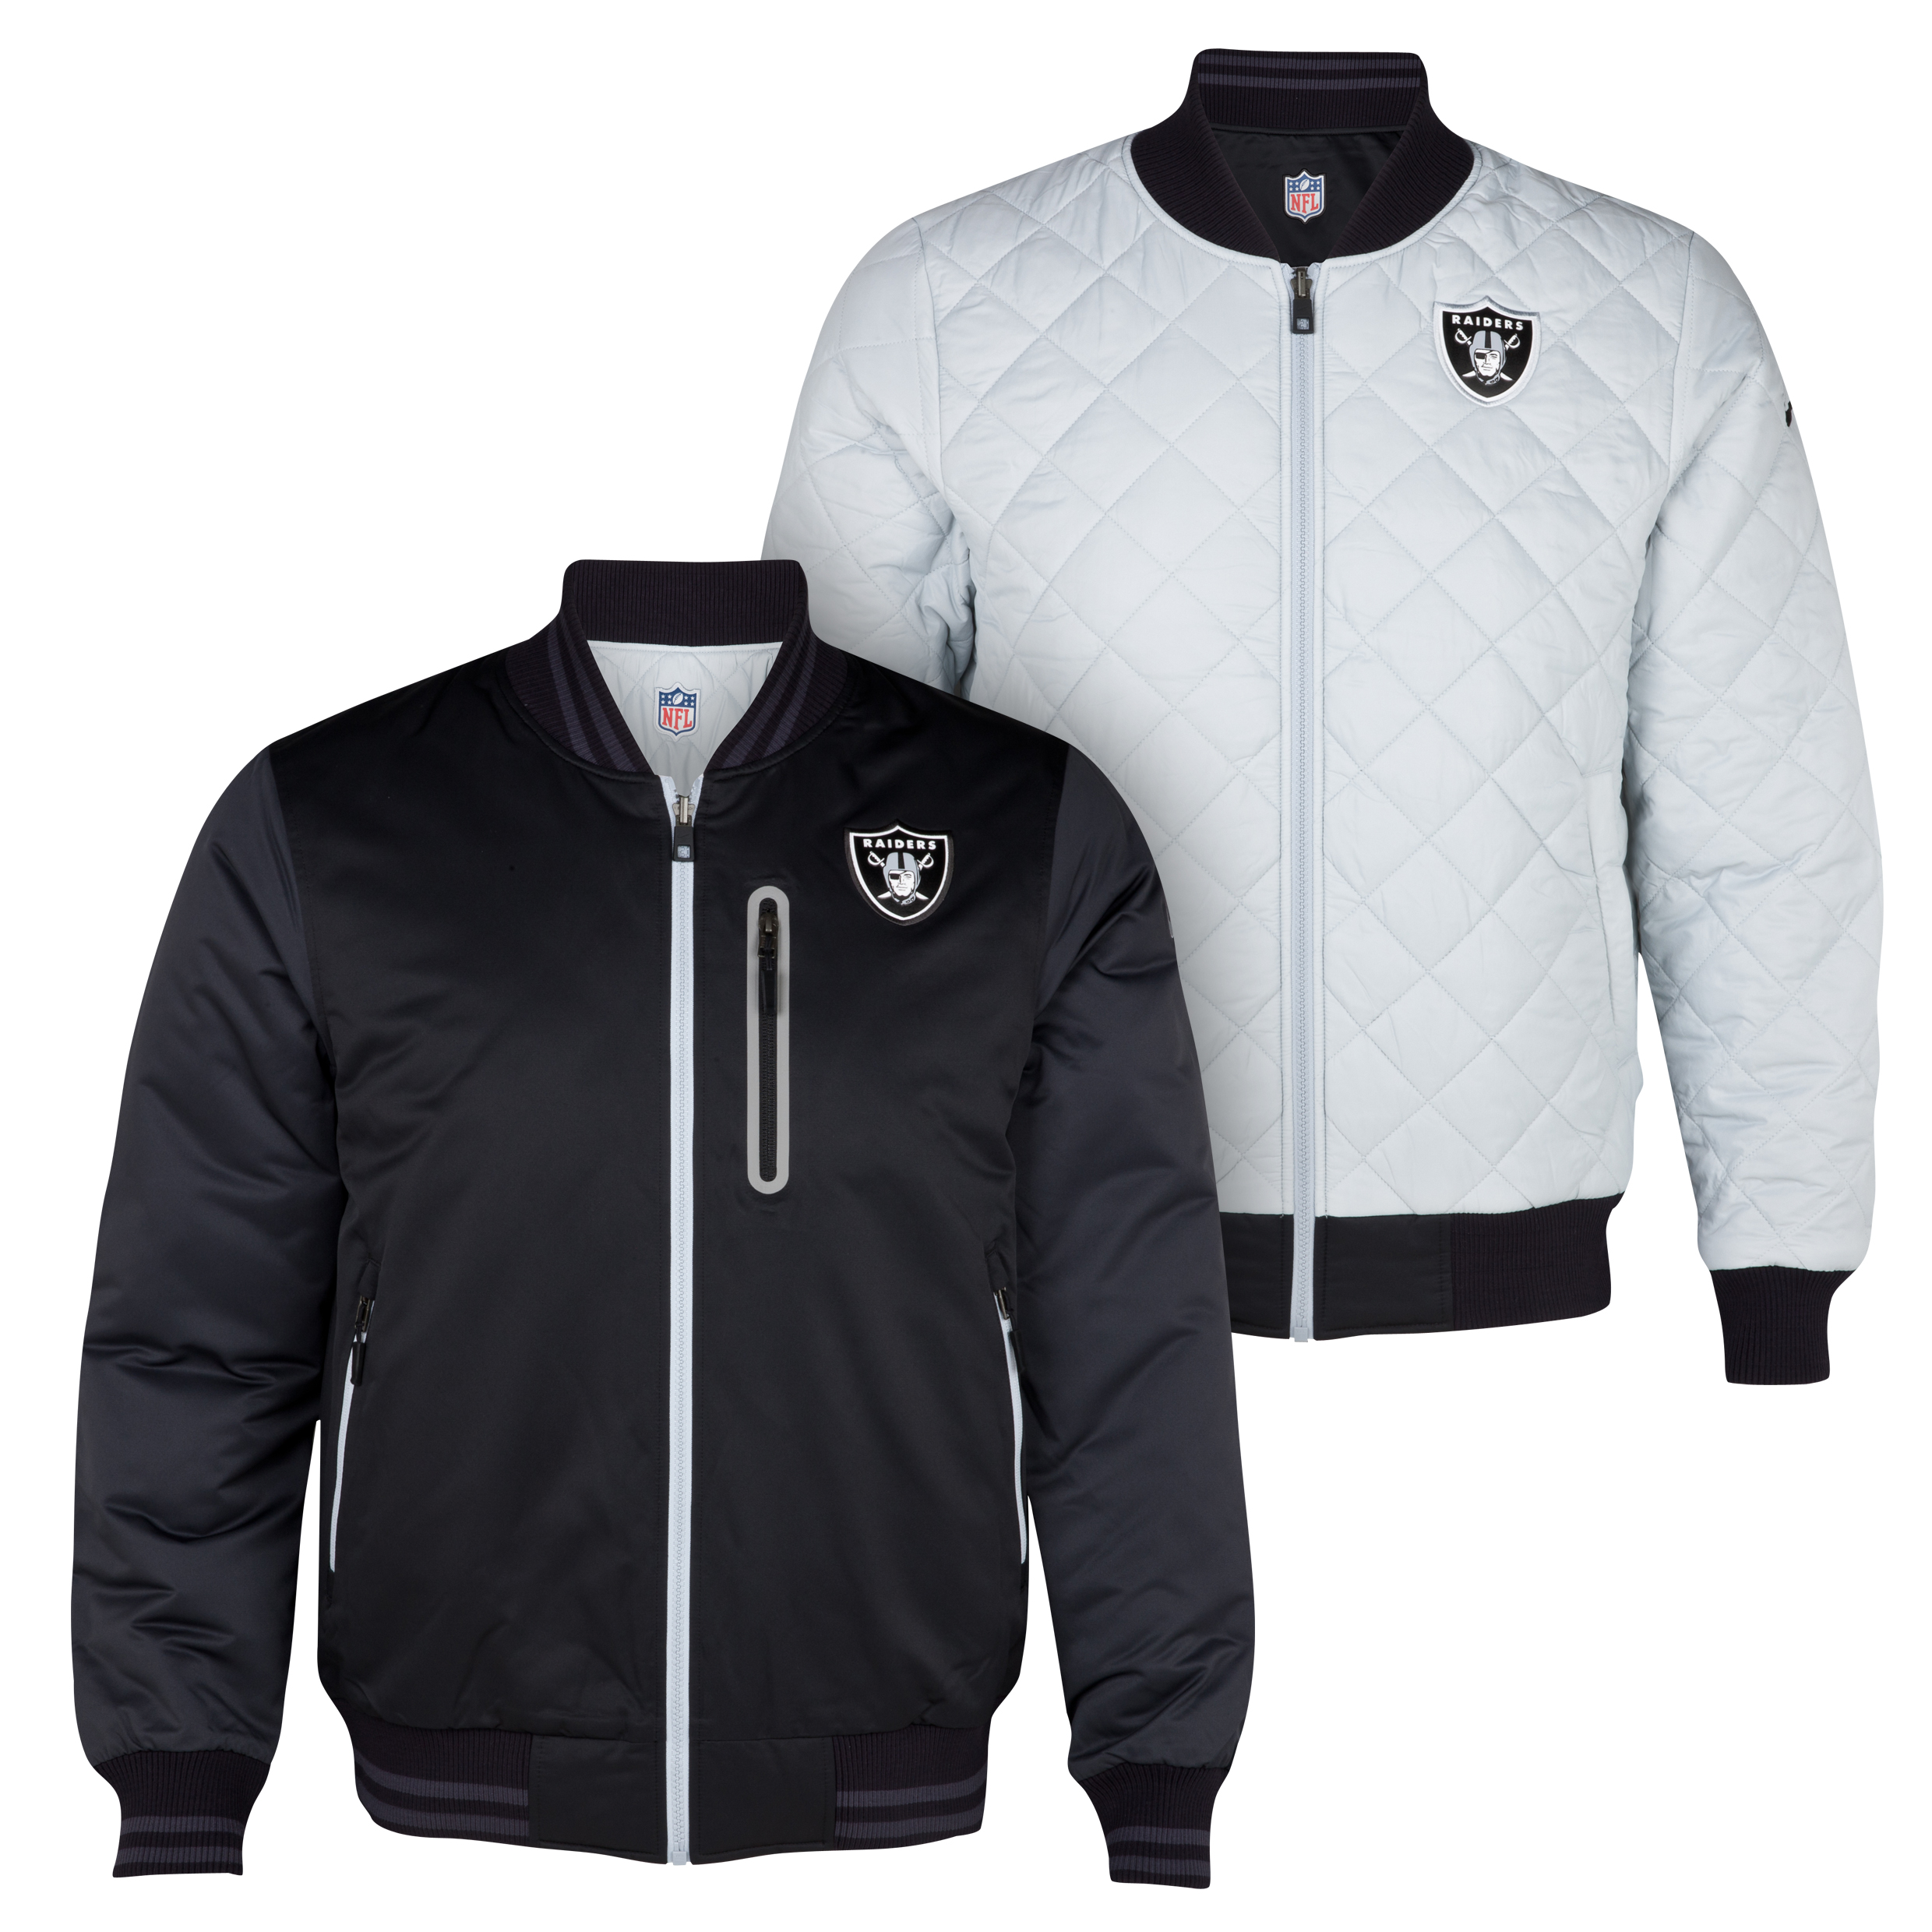 Oakland Raiders Destroyer Jacket - Black